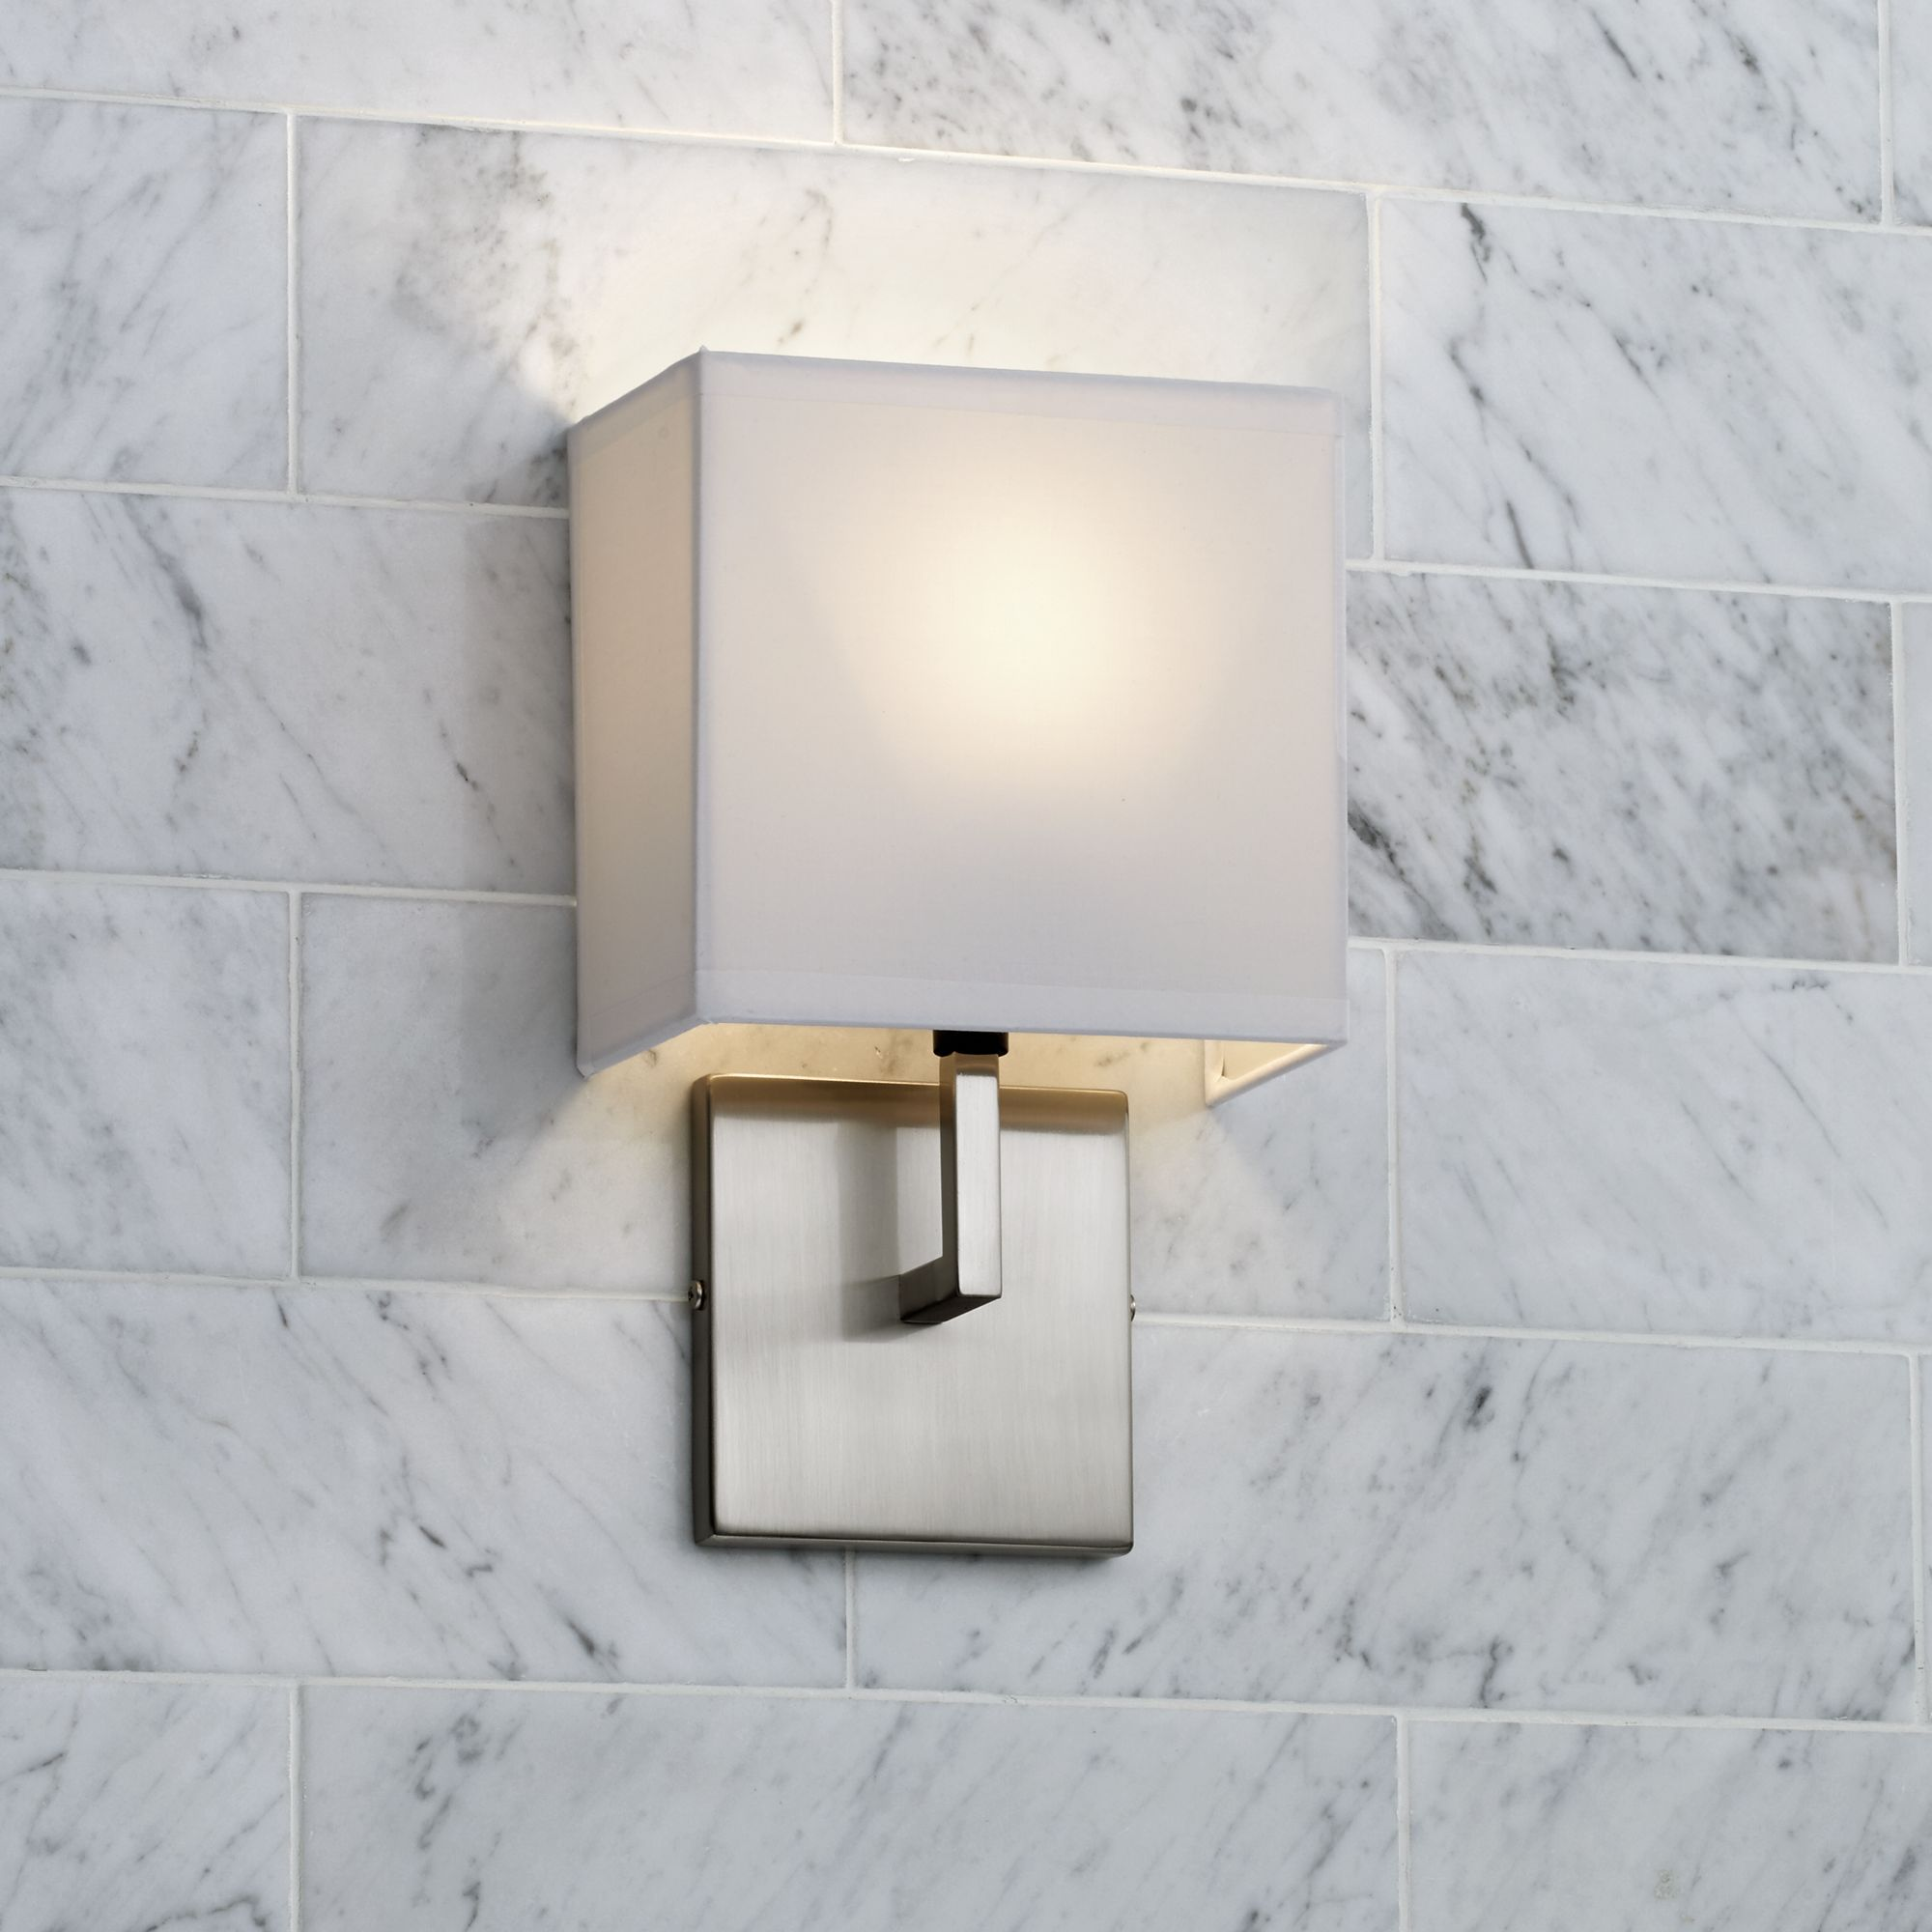 George Kovacs Nickel 11 1/4  High Half-Shade Wall Sconce & George Kovacs Nickel 11 1/4